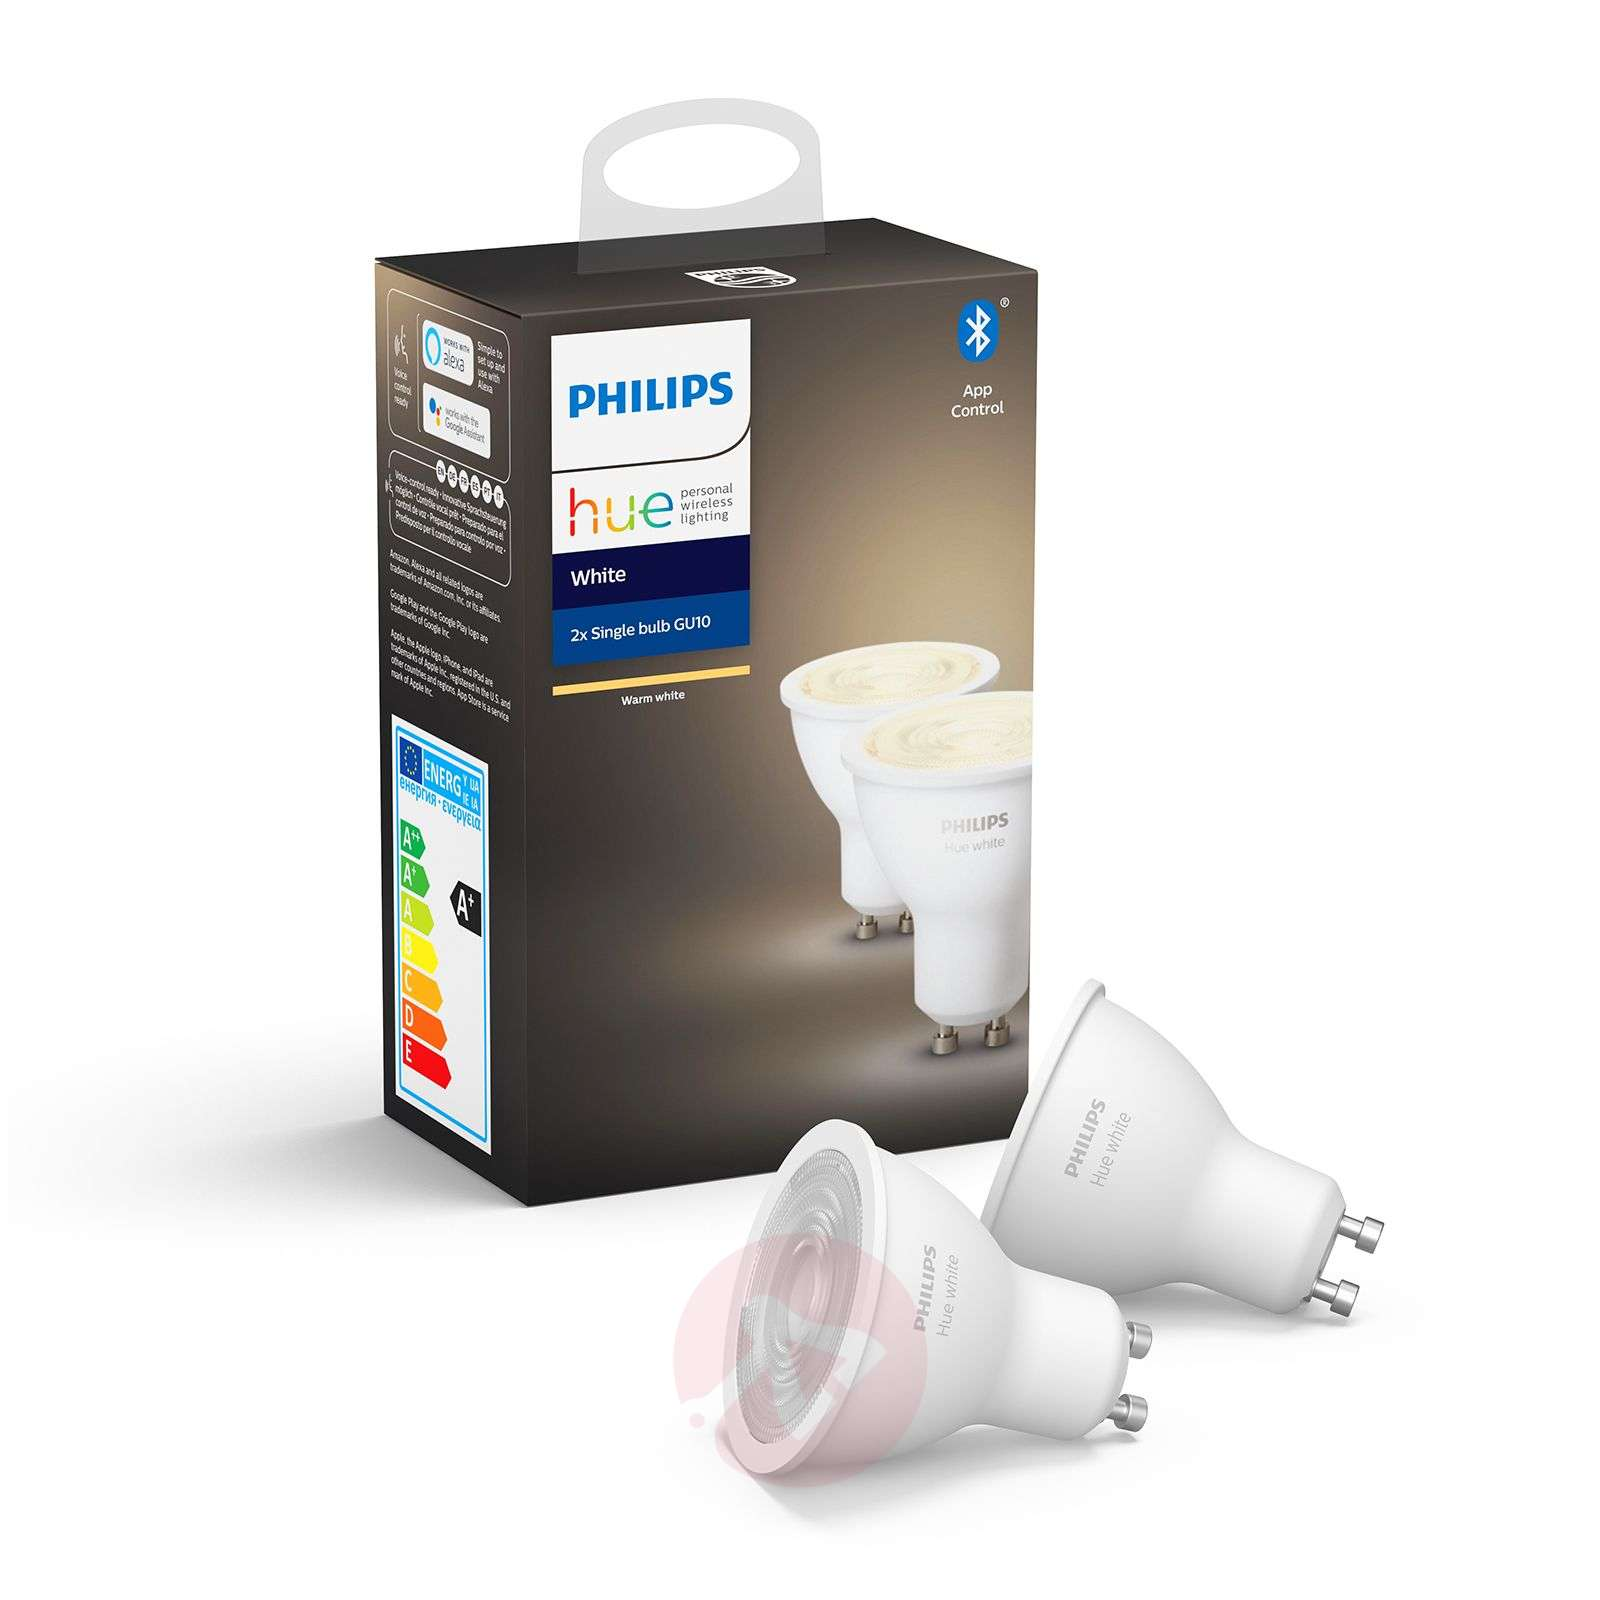 Philips Hue White bombilla LED 5,2 W GU10 set de 2-7534133-01